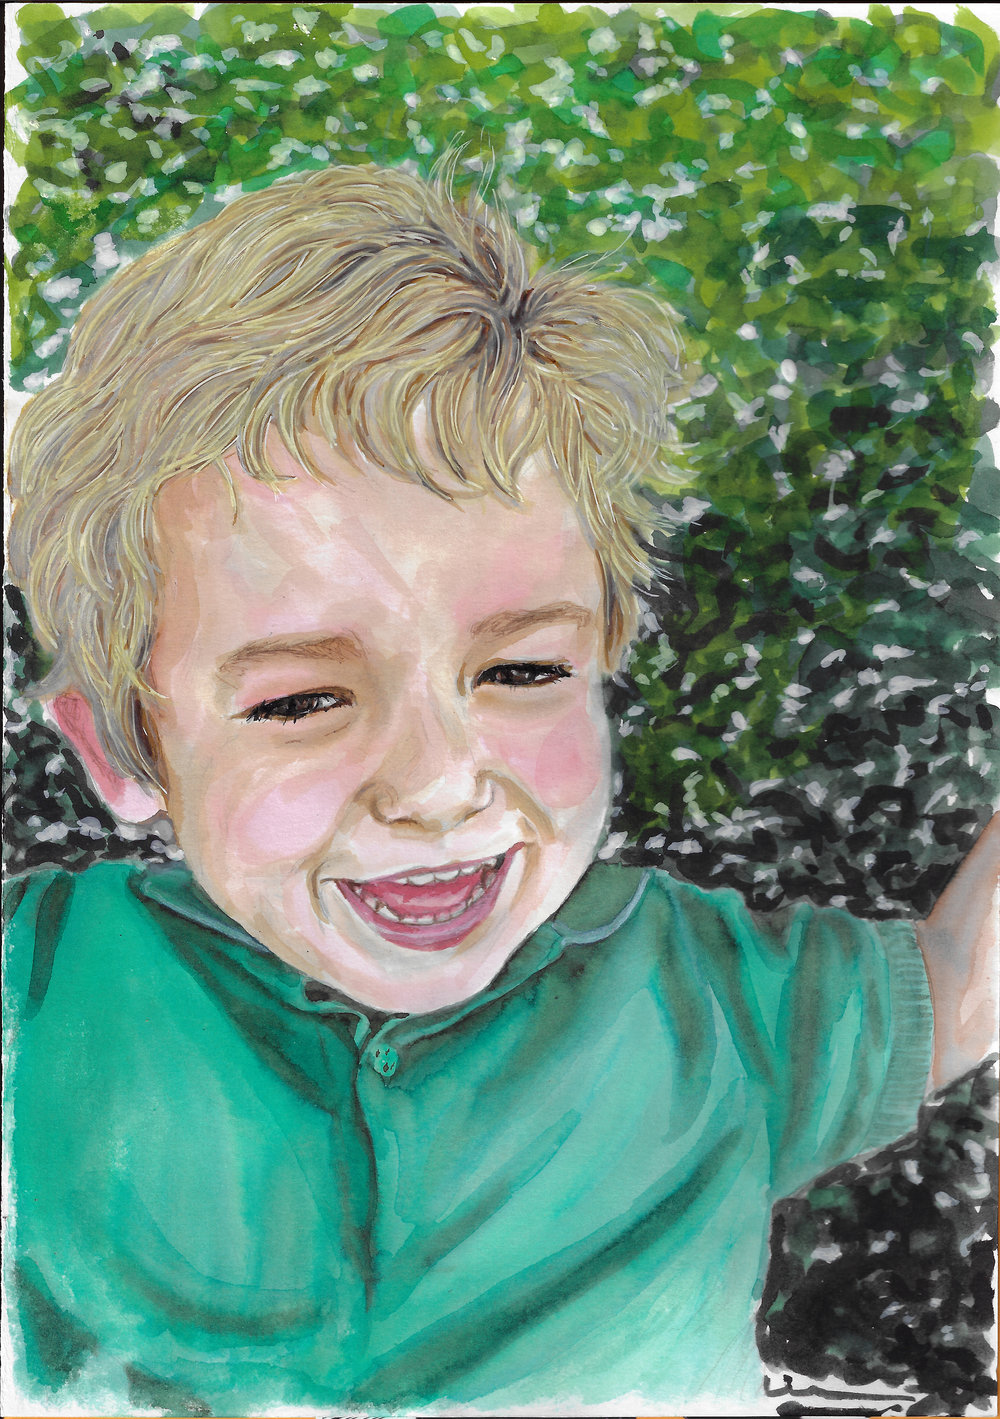 Smiling little boy. Watercolor and ink on Canson Illustration Paper (250g/m2), A4 (29,7x21 cm). Sold. Commissioned work.  (Unavailable.)